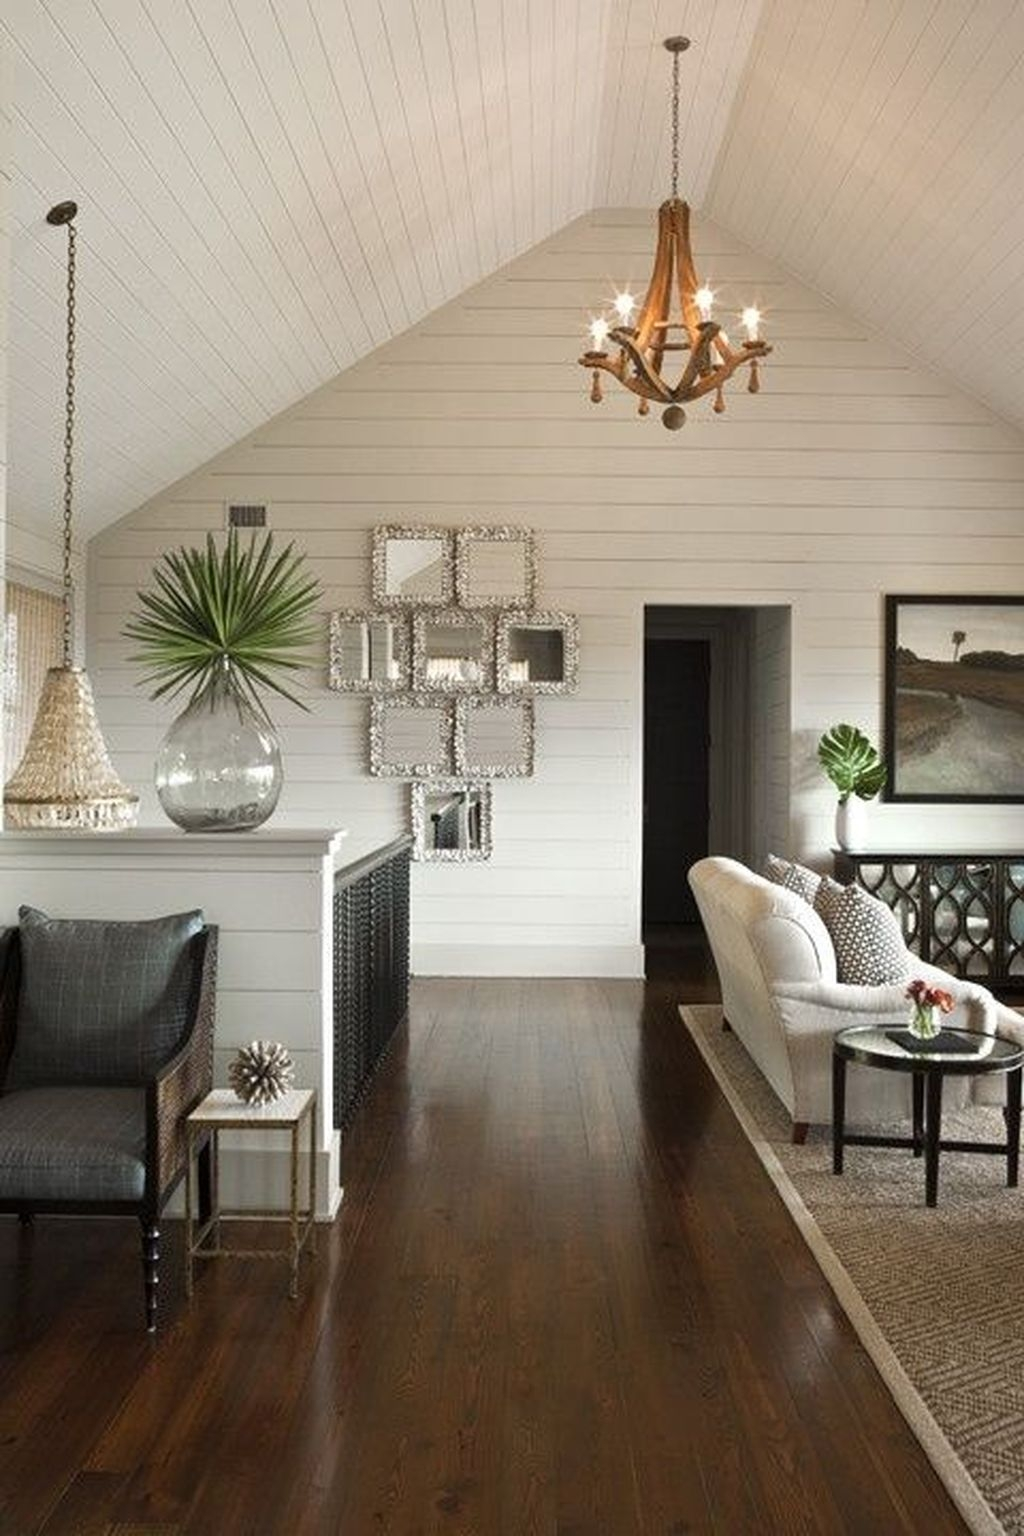 Wood-Beams-Ceiling-Ideas-For-Cottage